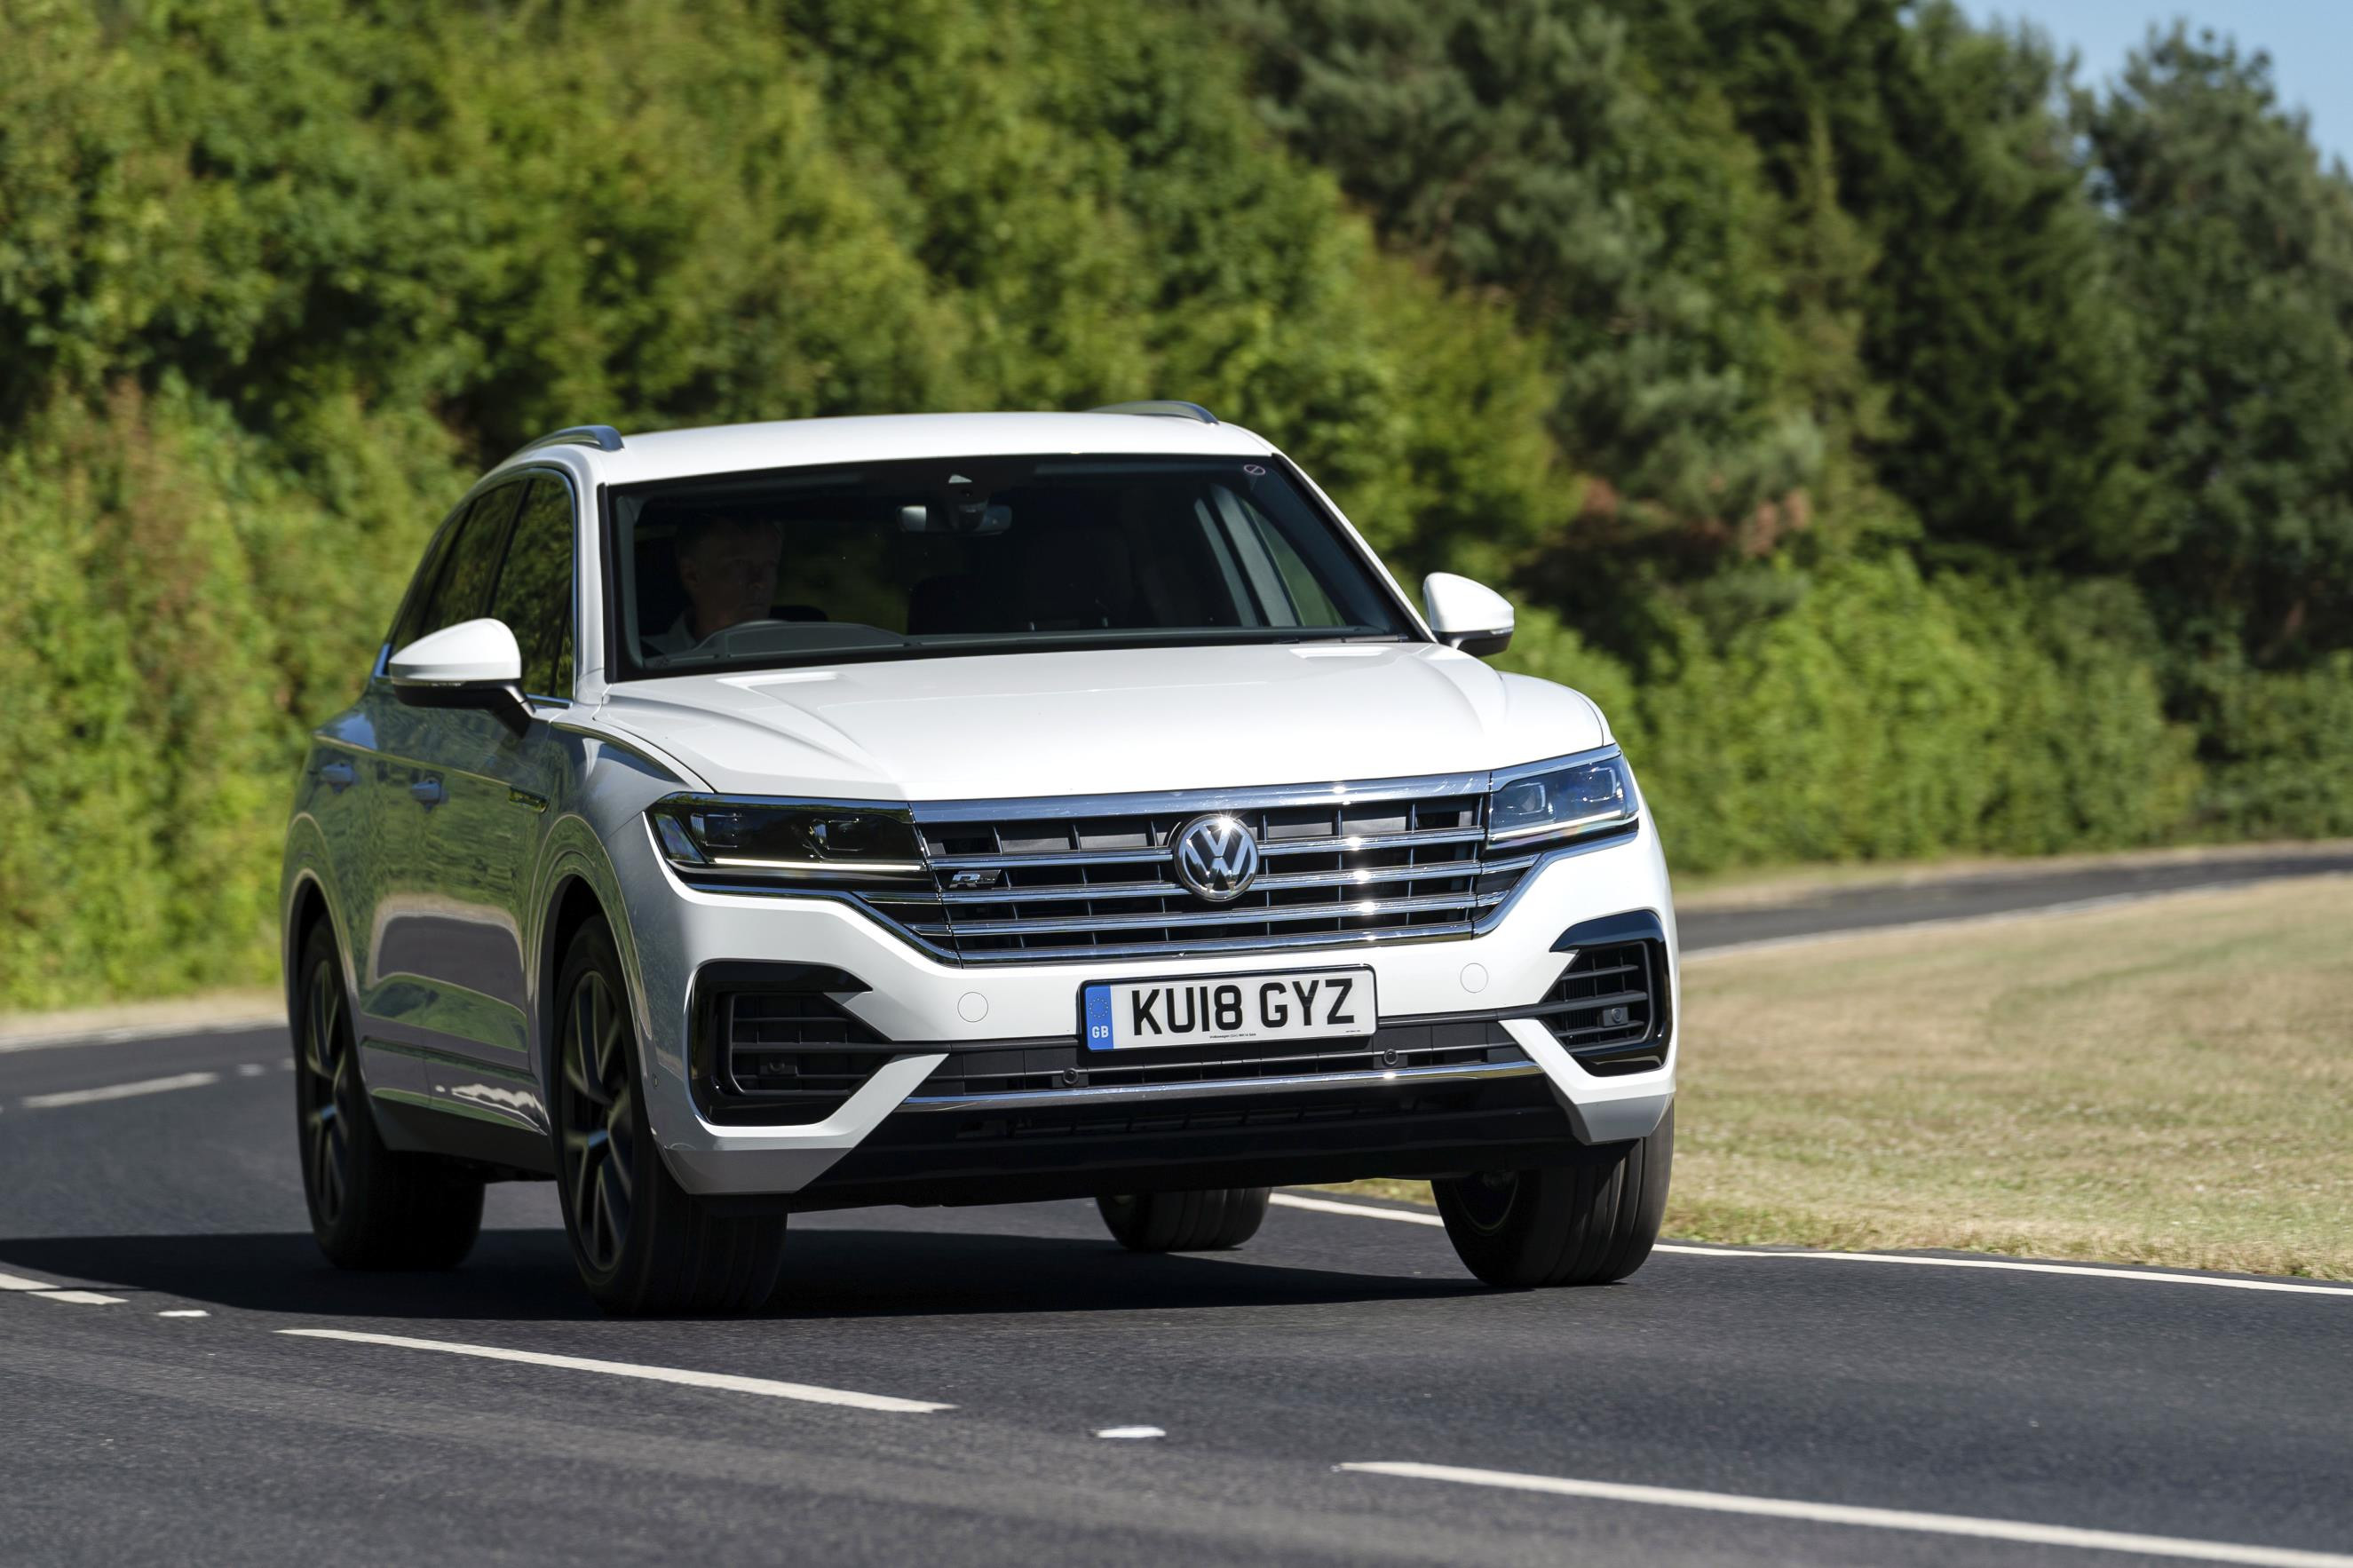 White Volkswagen Touareg driving towards you round a bend